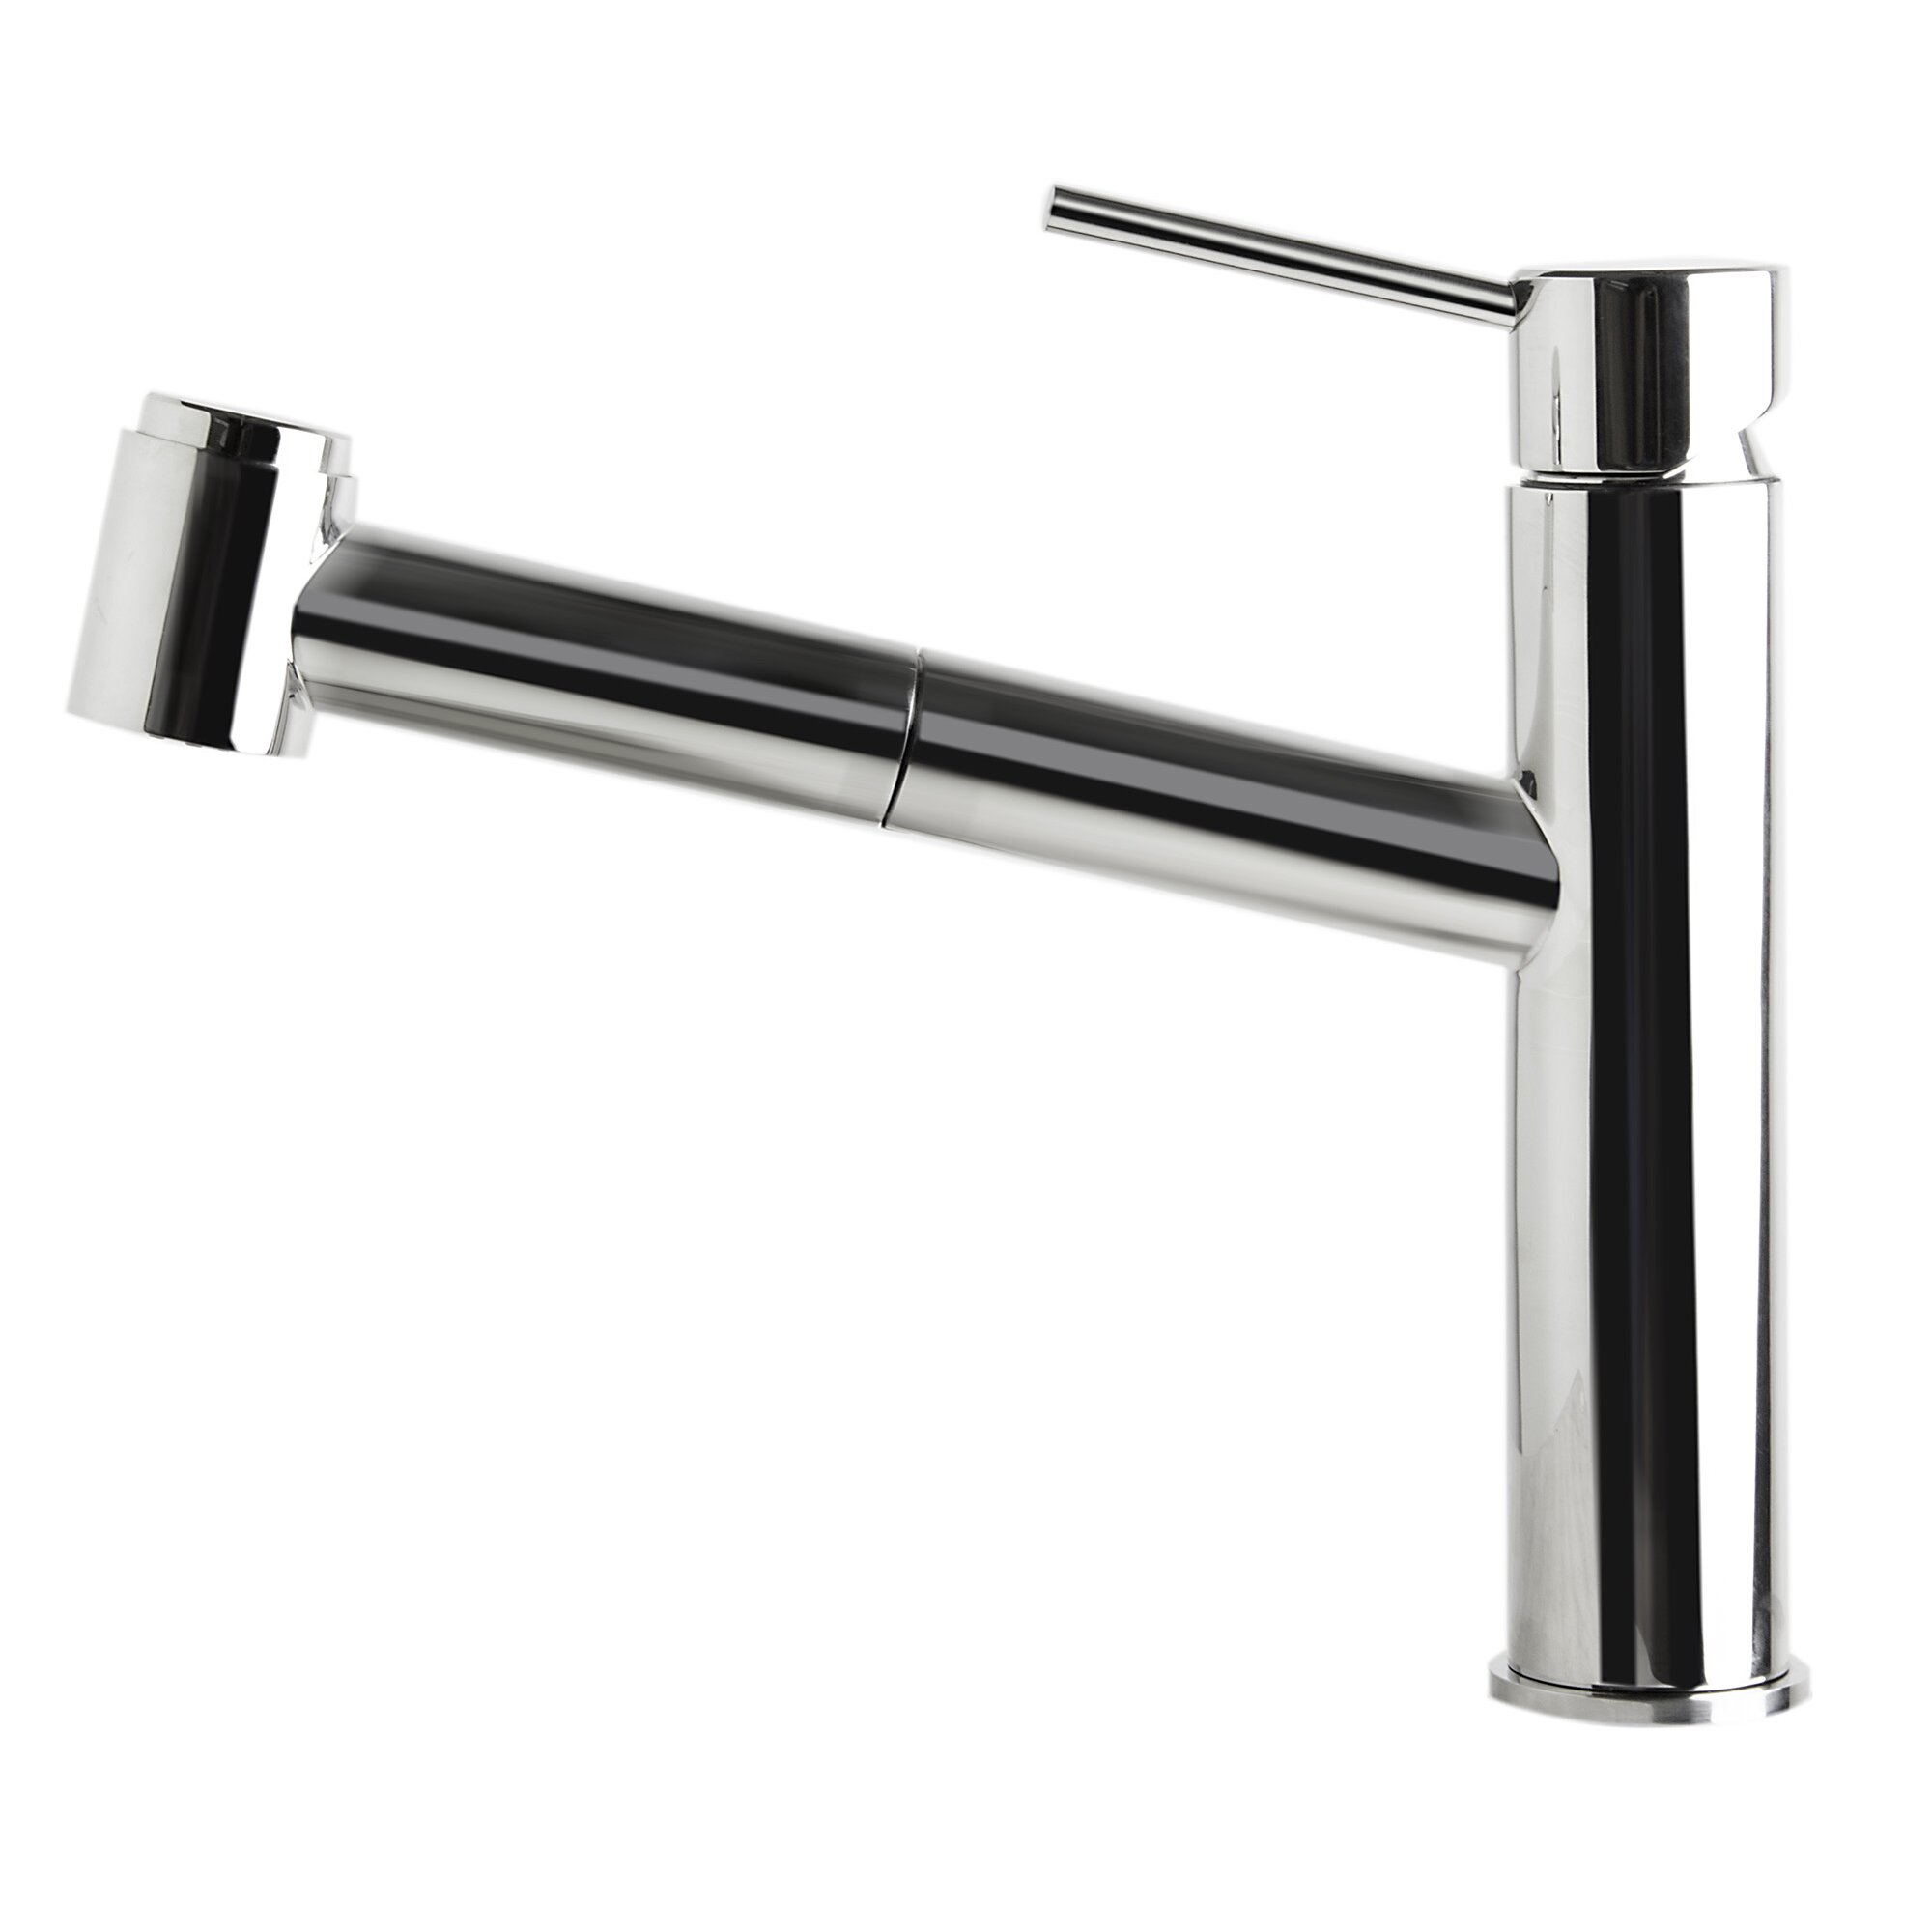 kitchen faucet with pull out spray wayfair yp77kpo bn jpg